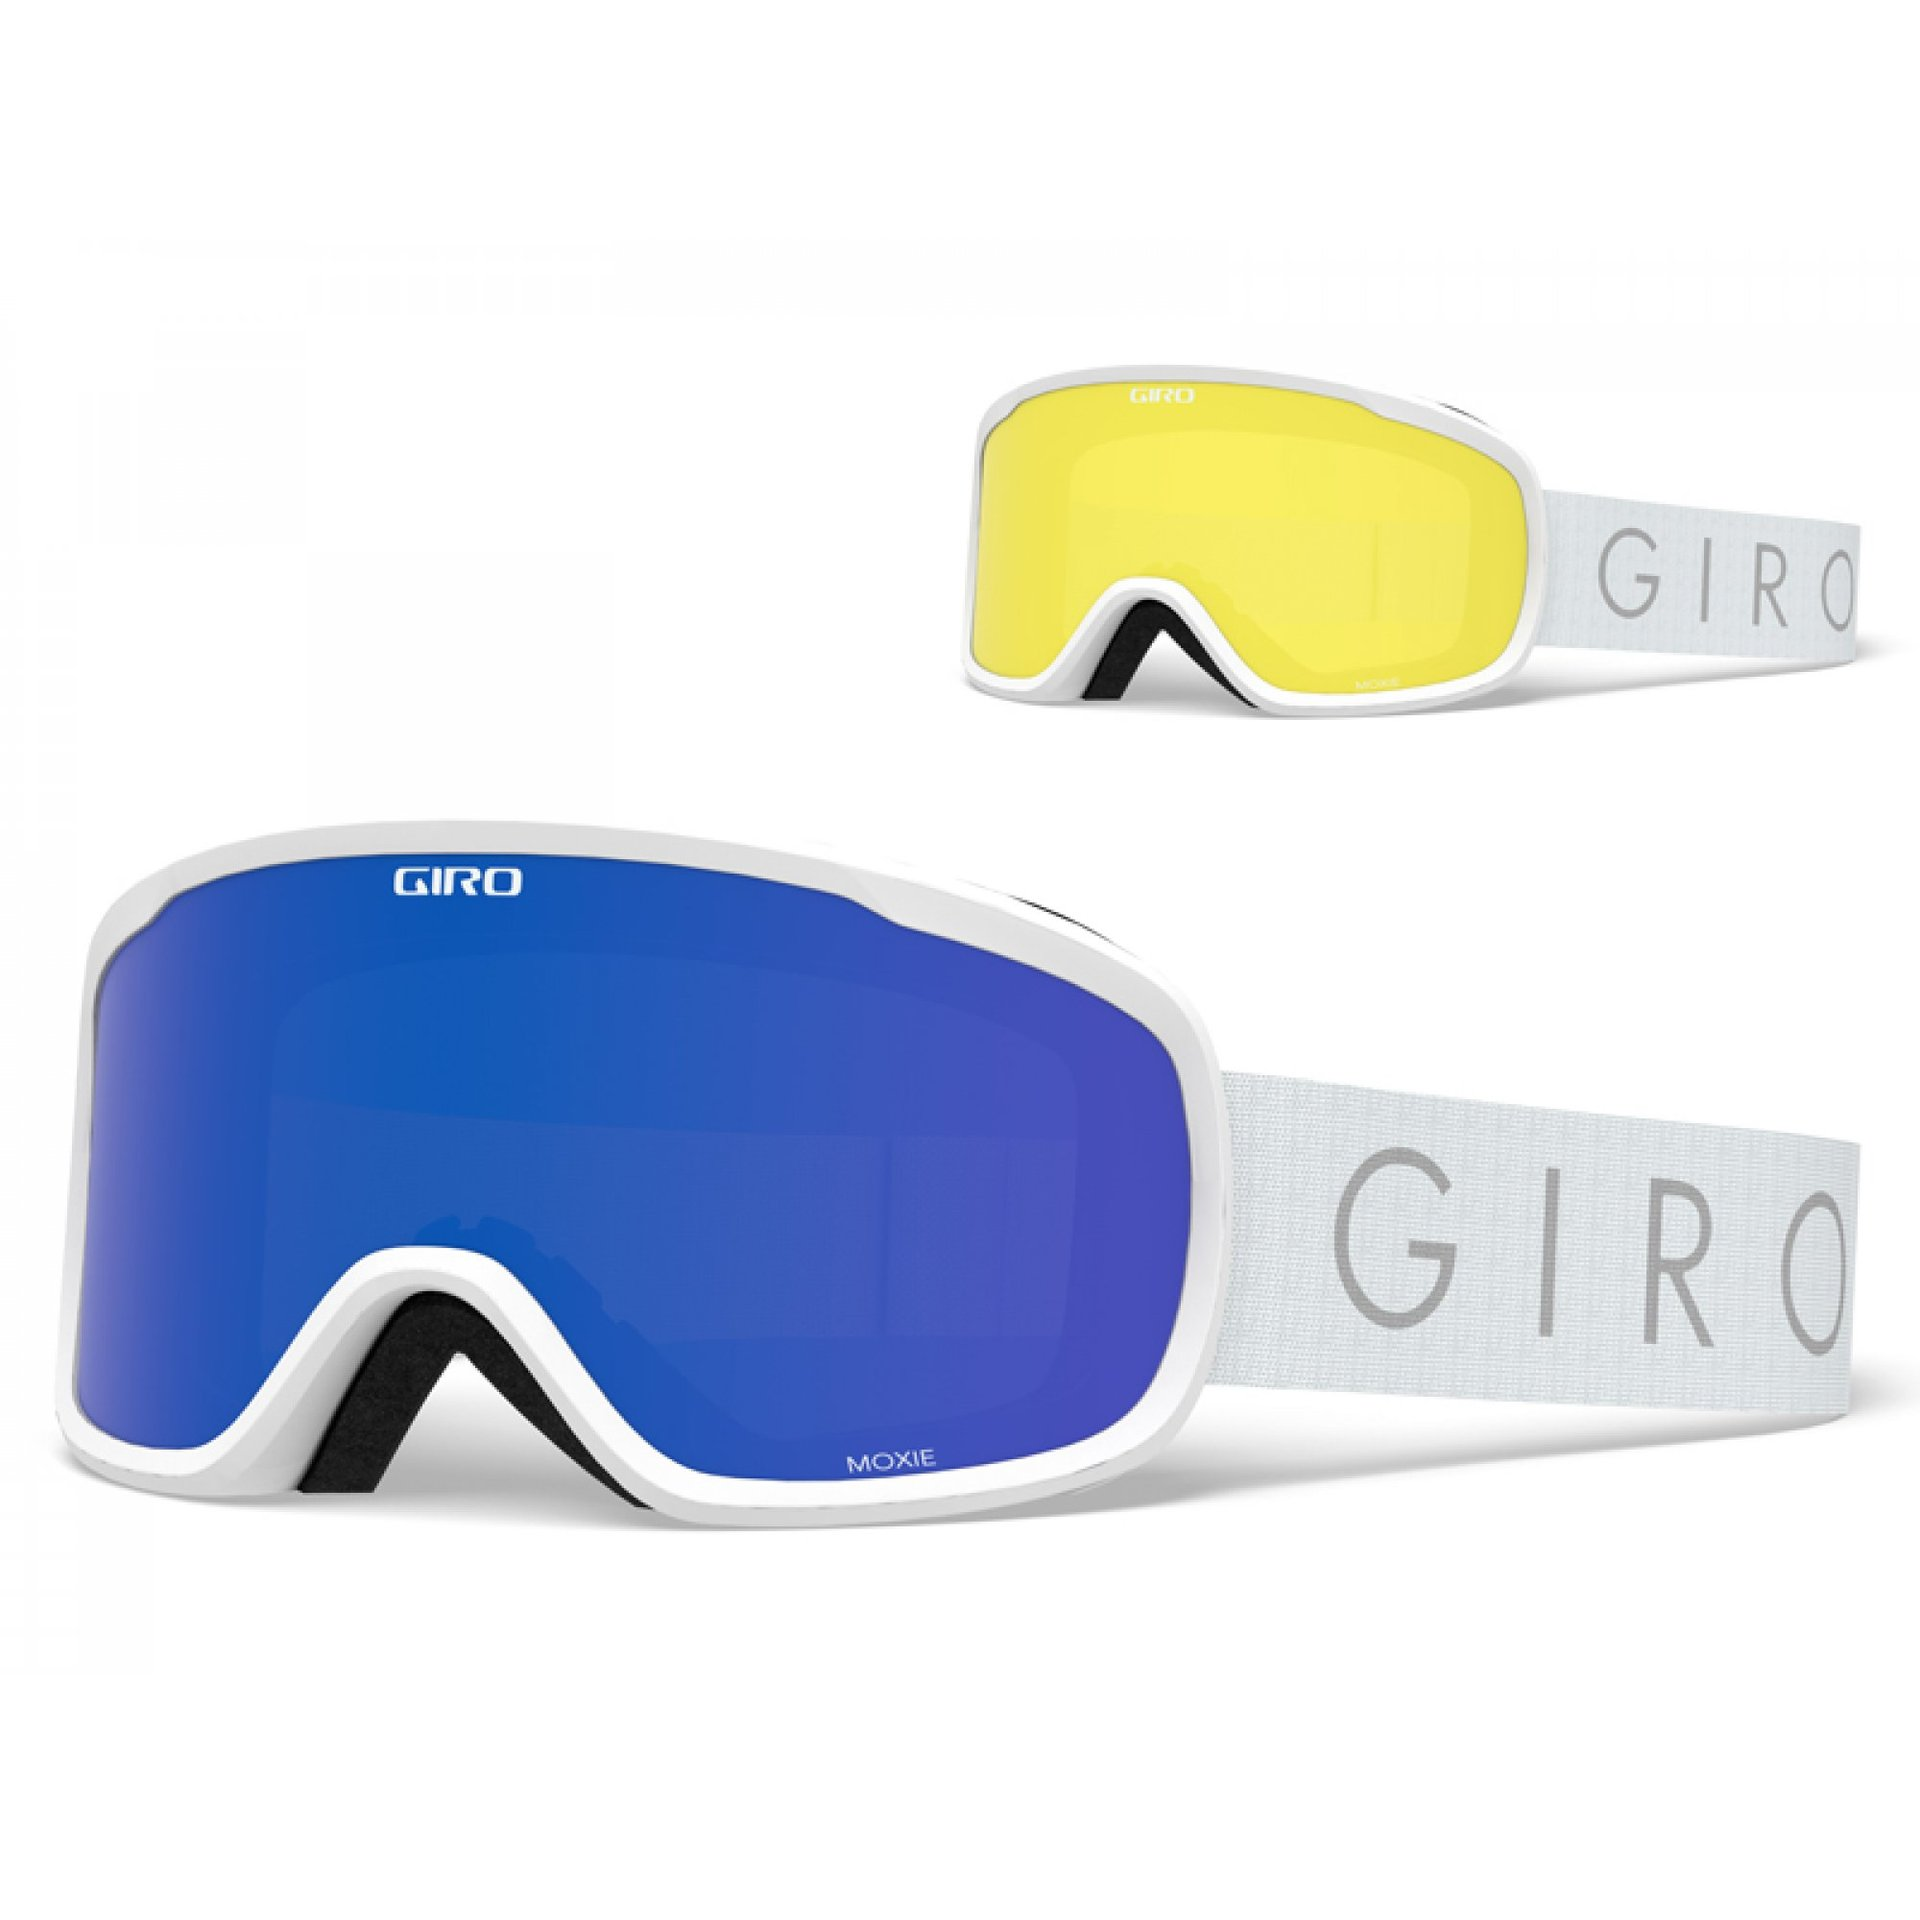 GOGLE GIRO MOXIE WHITE CORE LIGHT|GREY COBALT+YELLOW 1